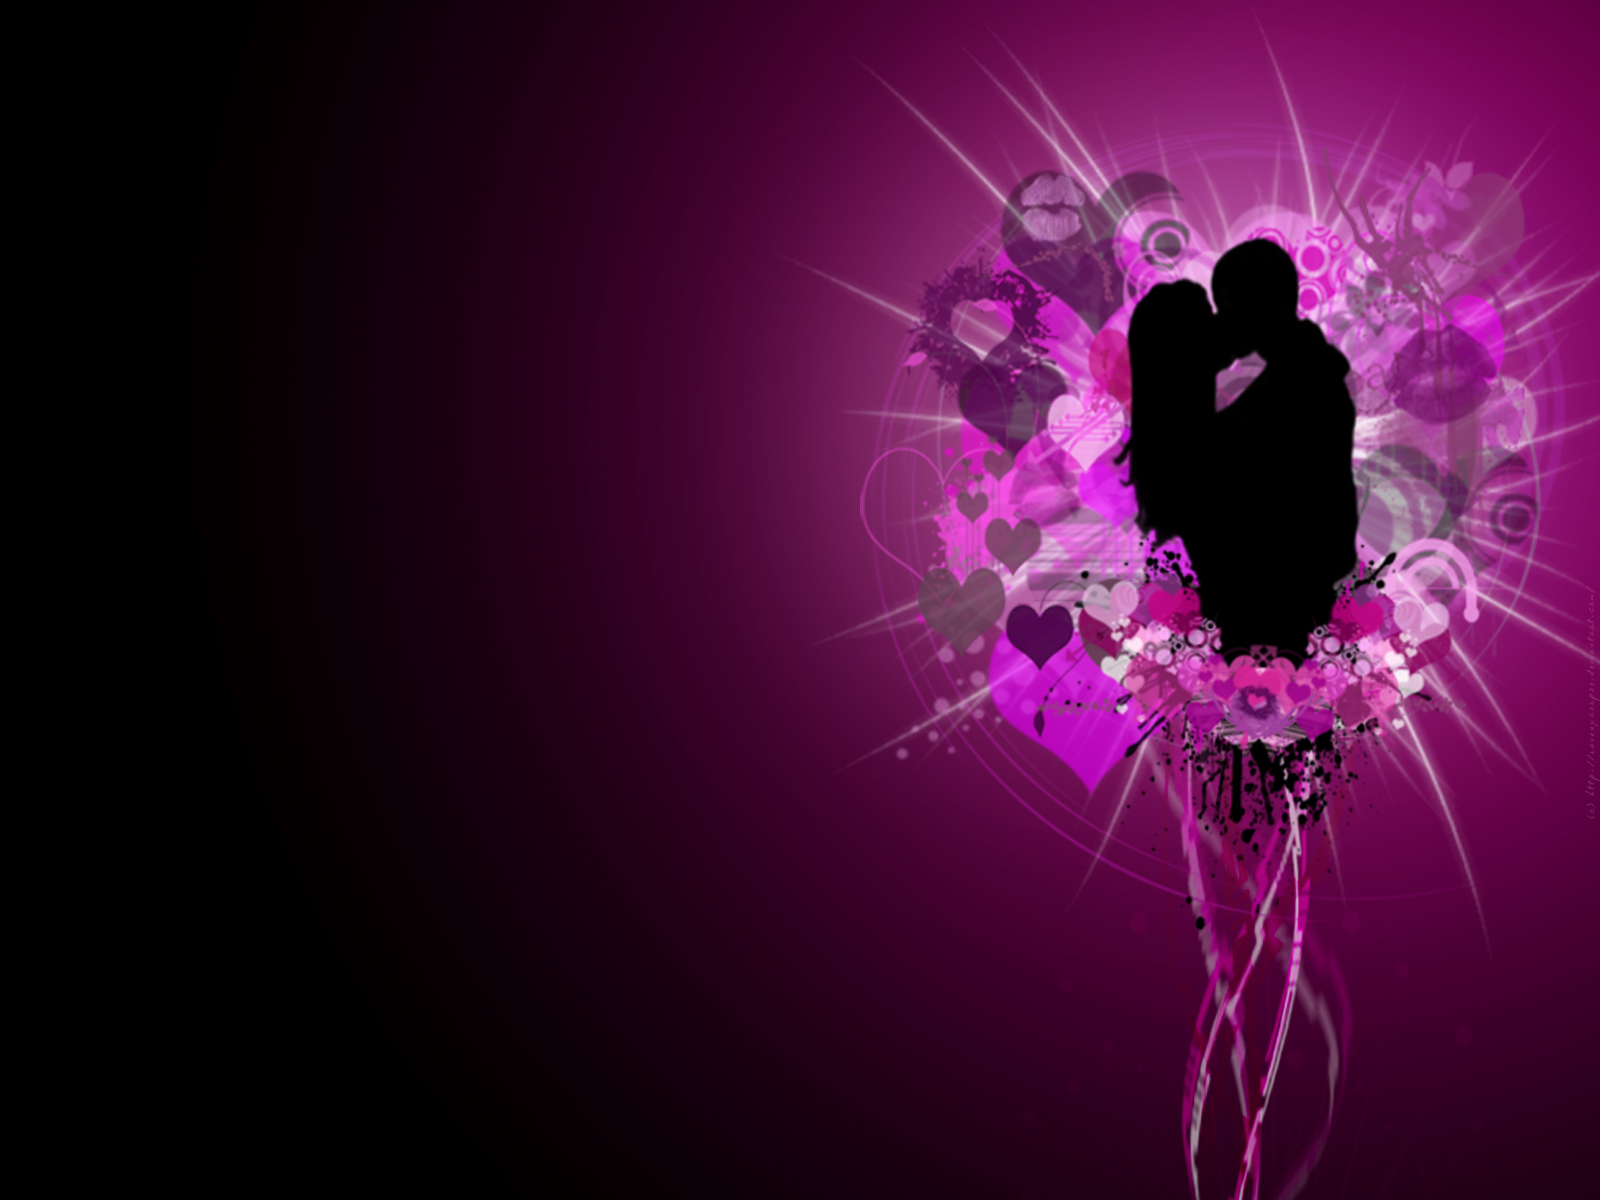 romantic wallpapers hd of - photo #5